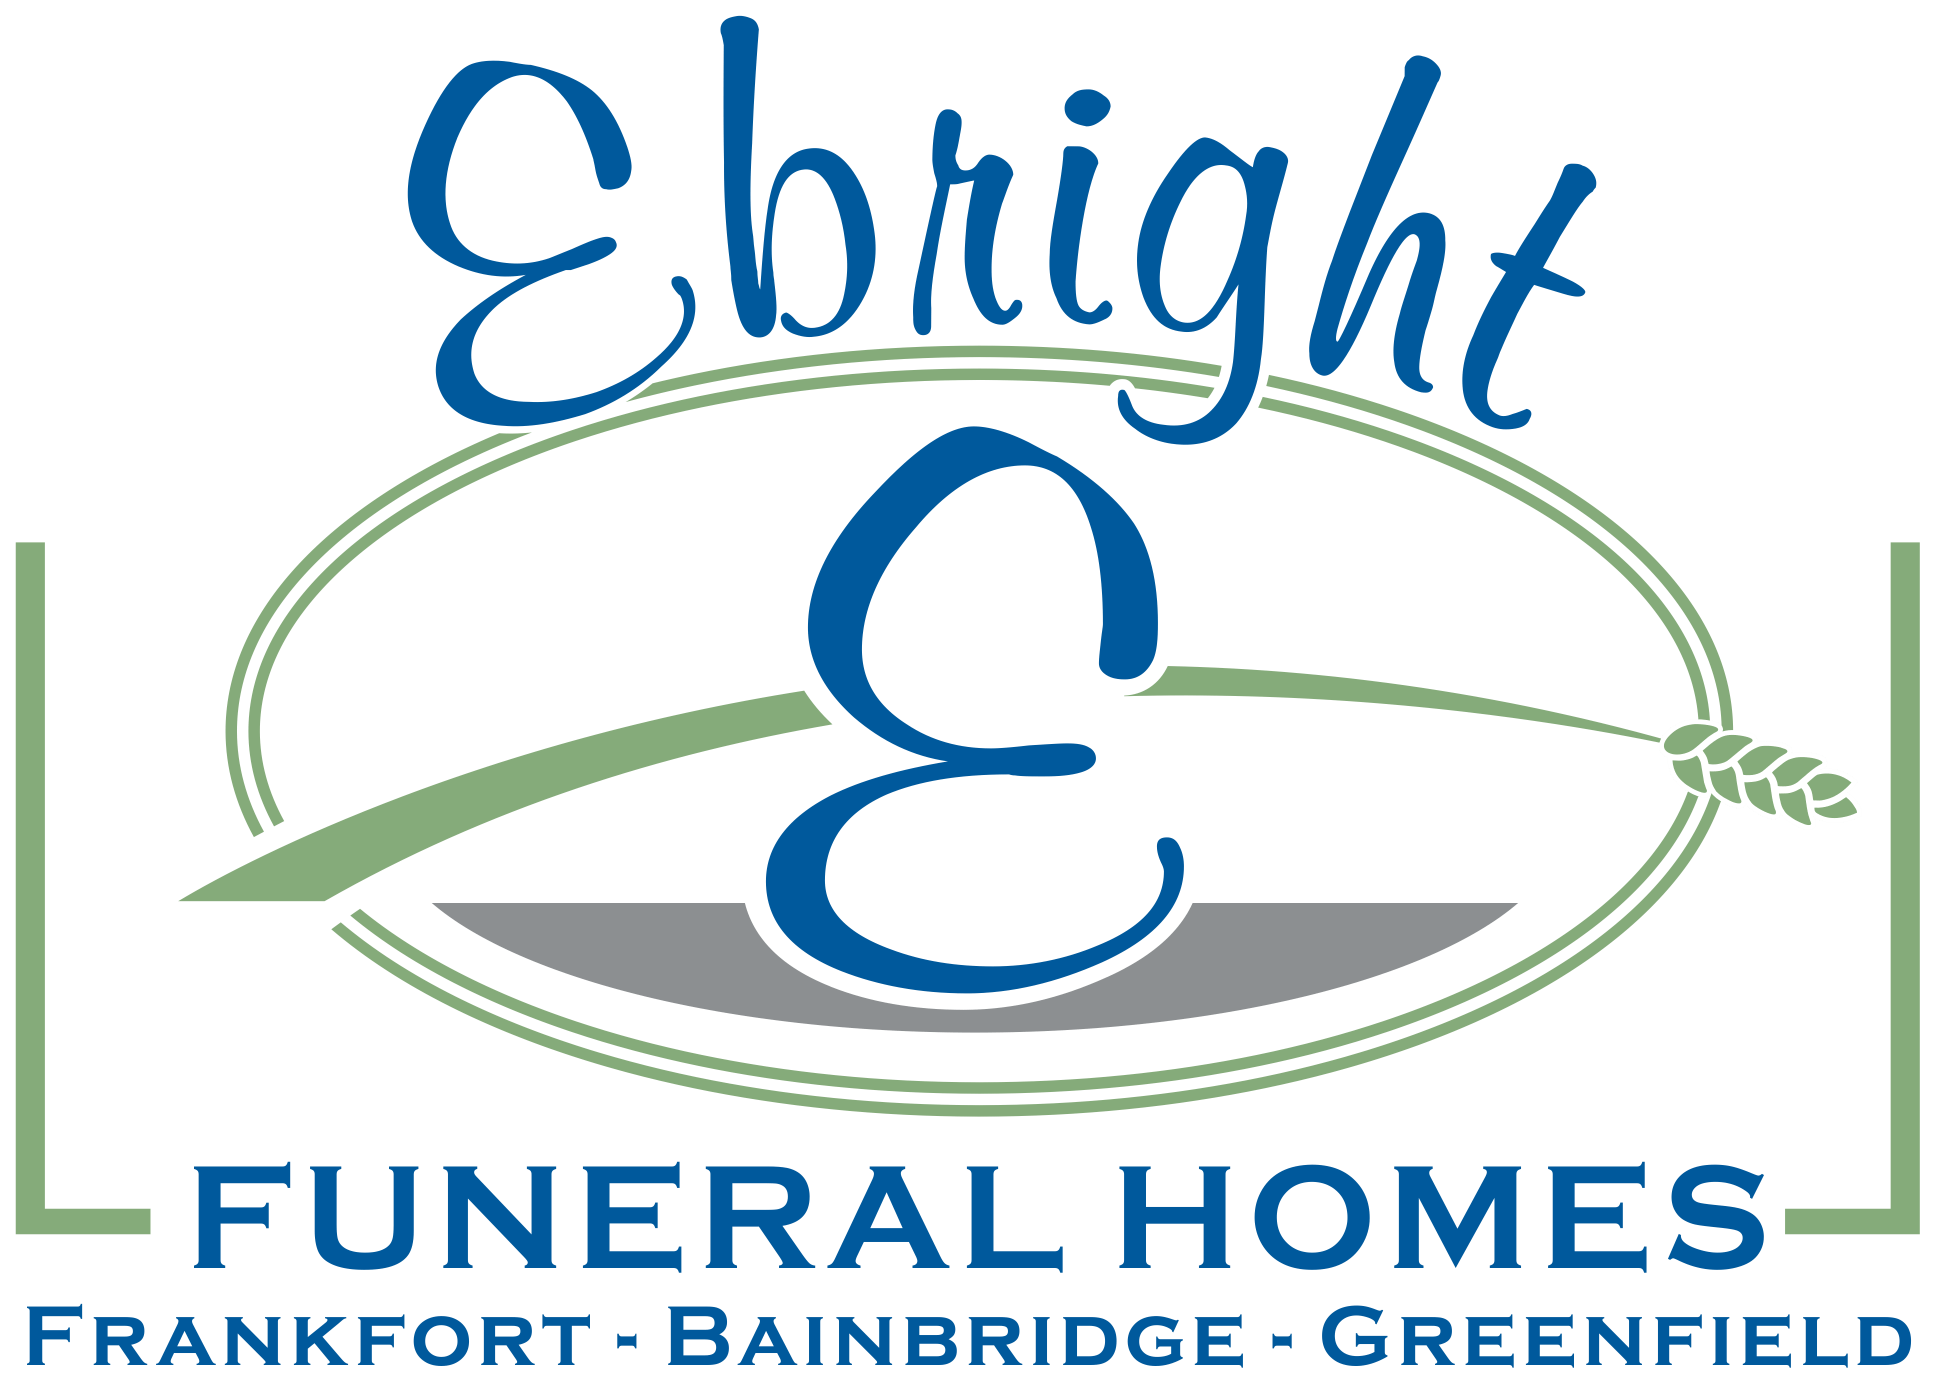 All Obituaries | Ebright Funeral Home | Frankfort OH funeral